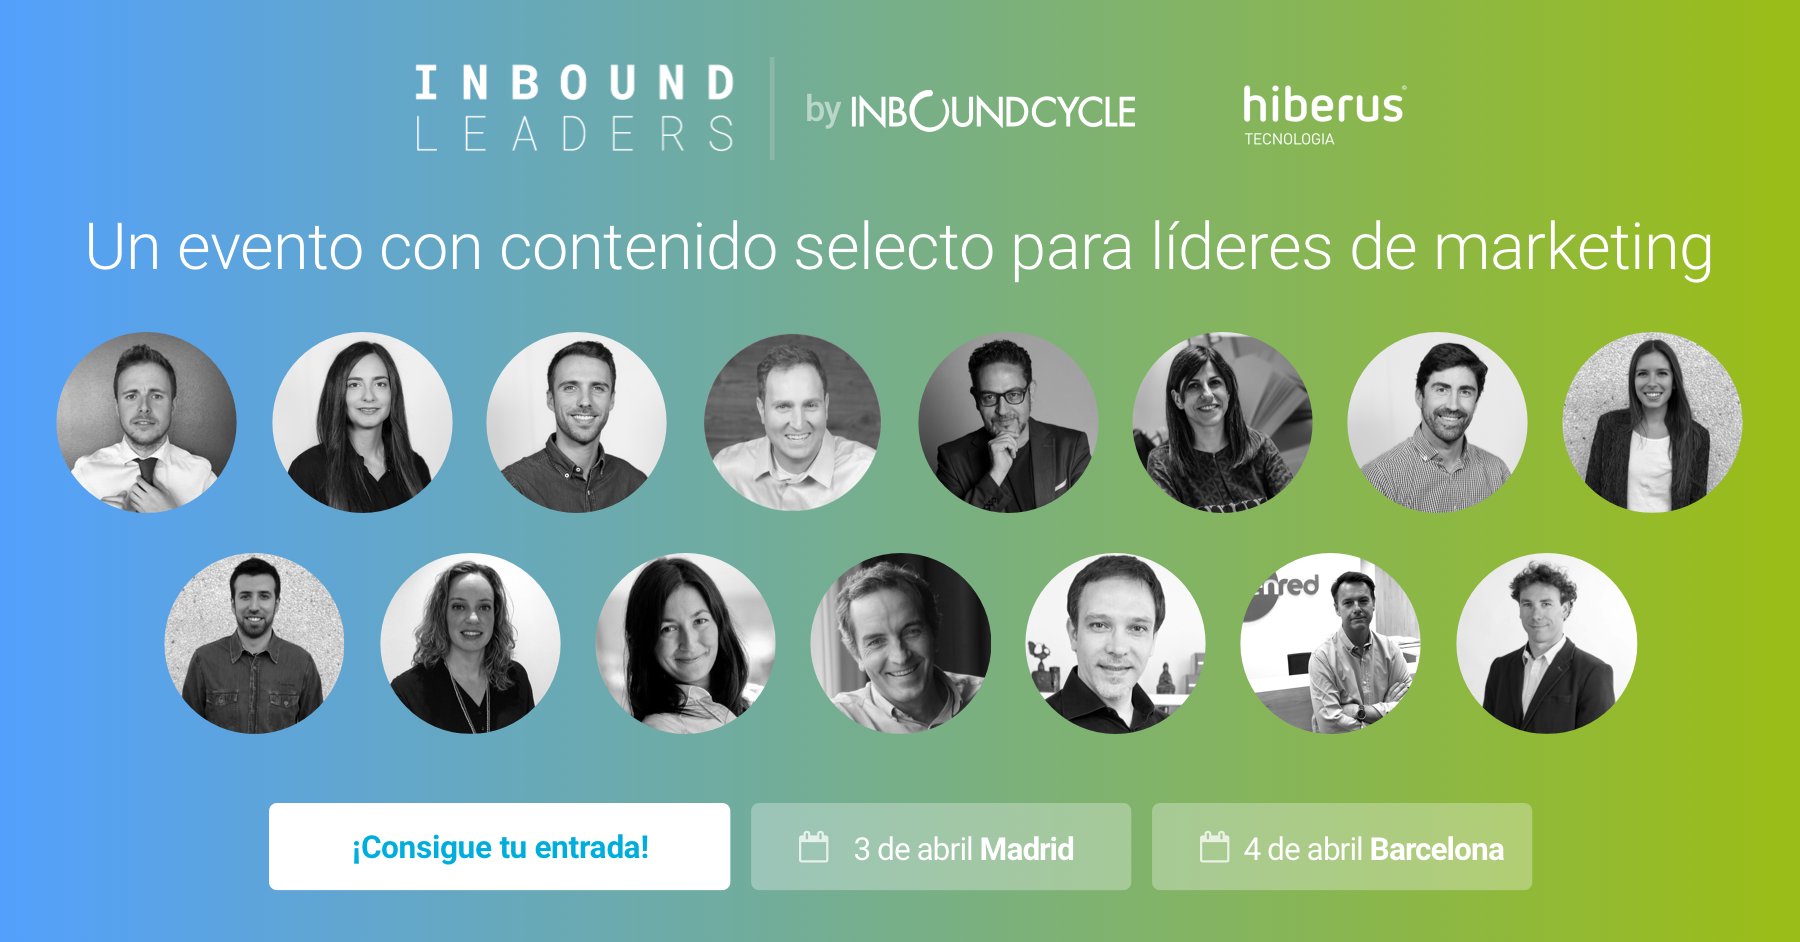 Inbound Leaders 2019 confirma grandes nombres del marketing para cerrar el cartel de la edición